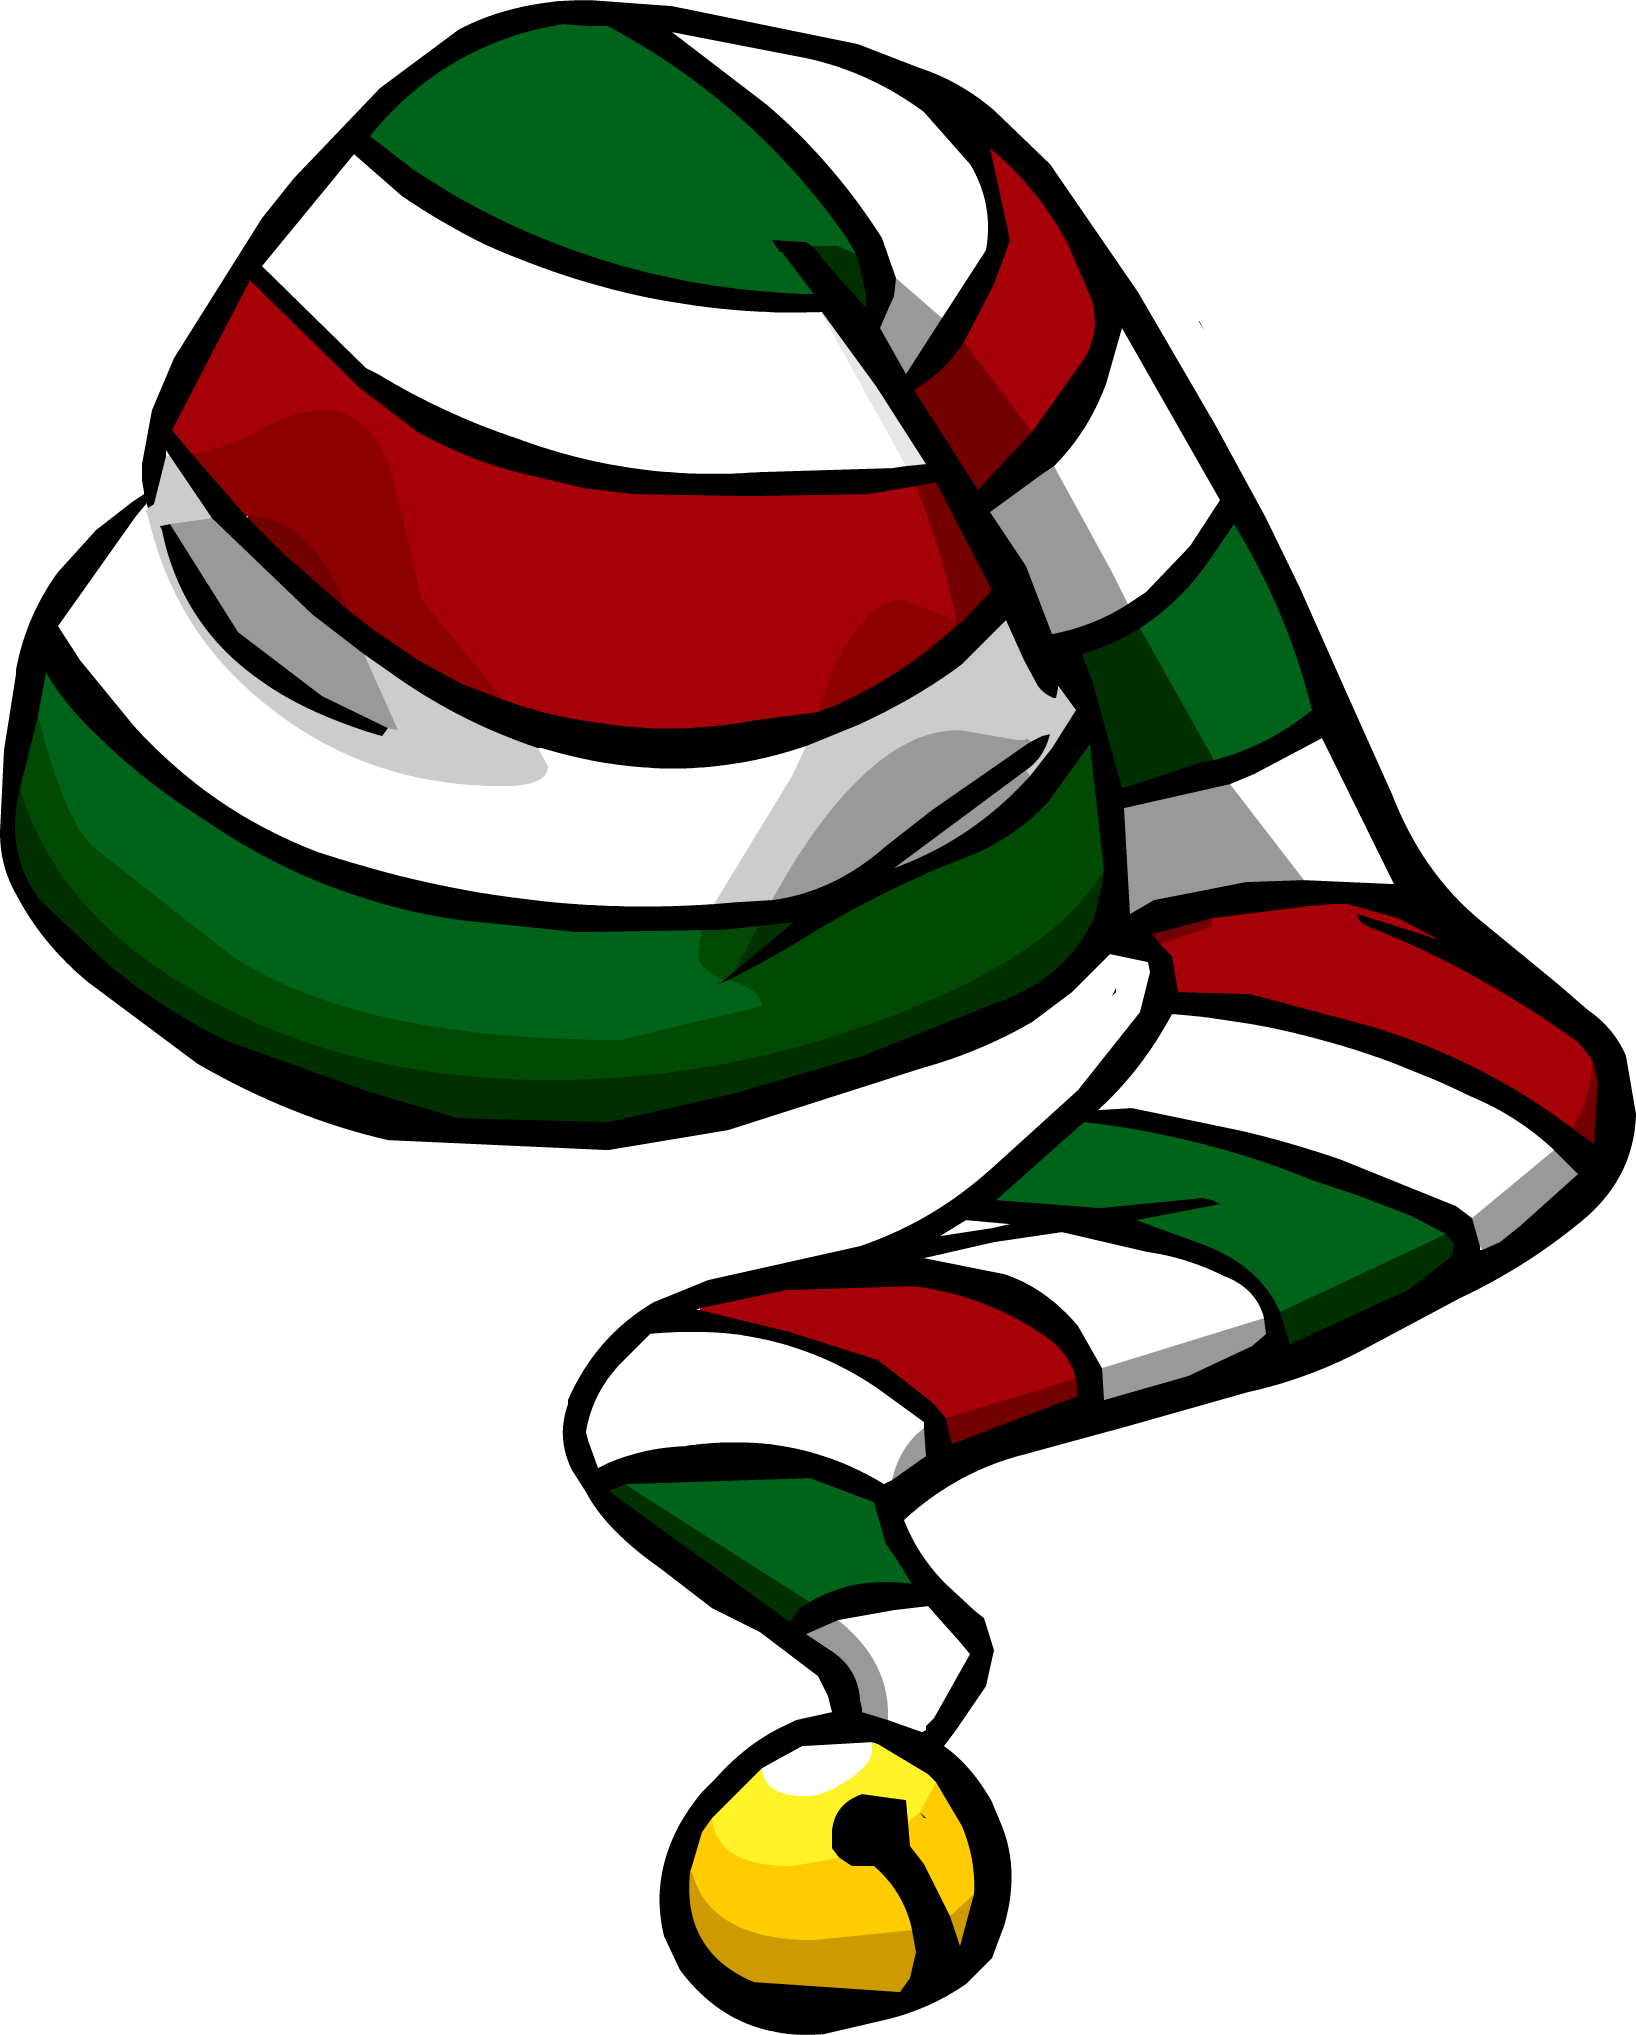 Buddy the elf clipart clipart images gallery for free.